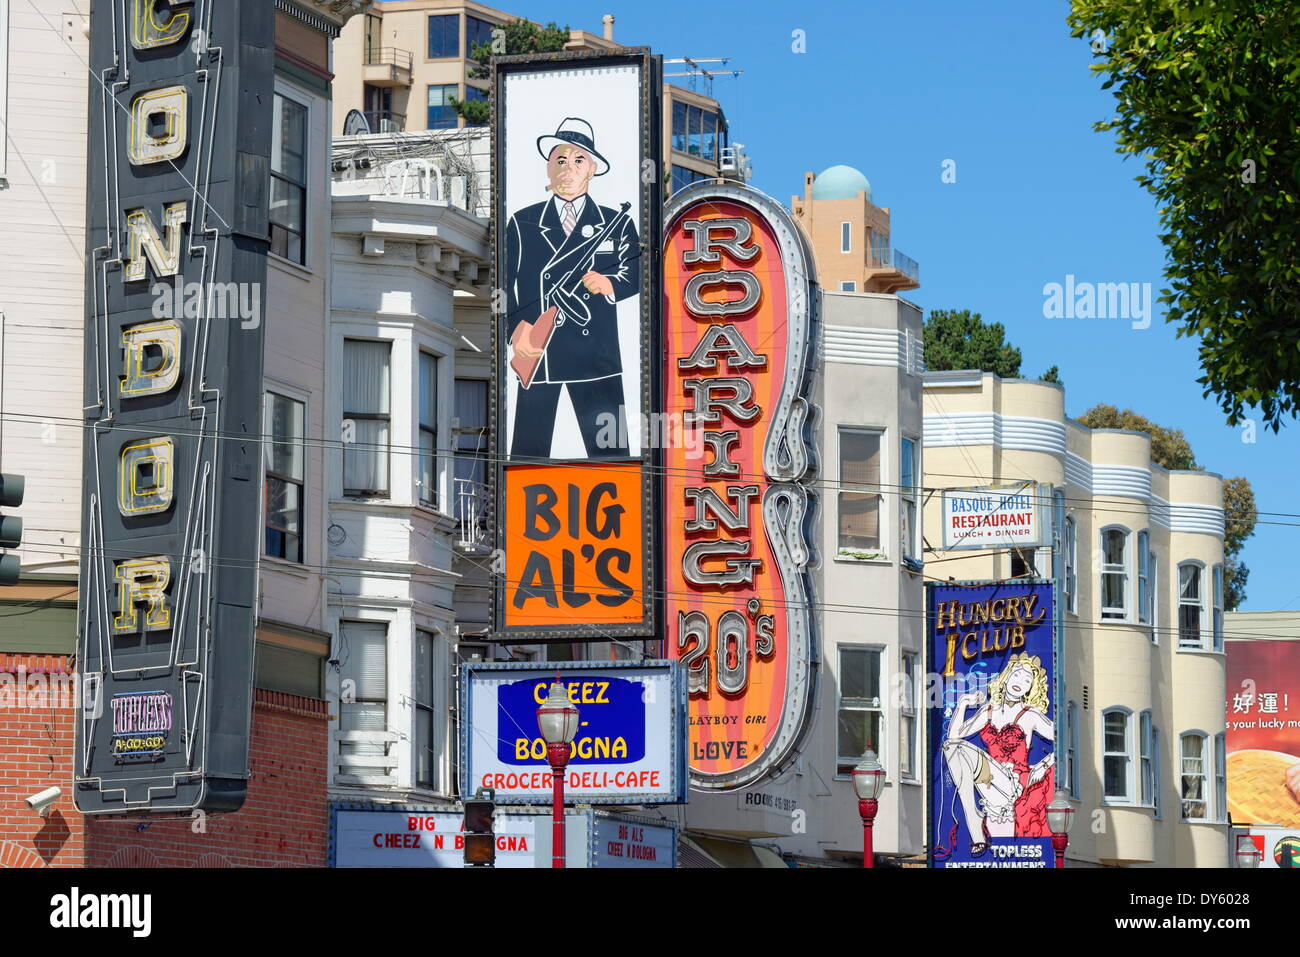 Clubs signs on buildings in North Beach district, San Francisco, California, United States of America, North America - Stock Image